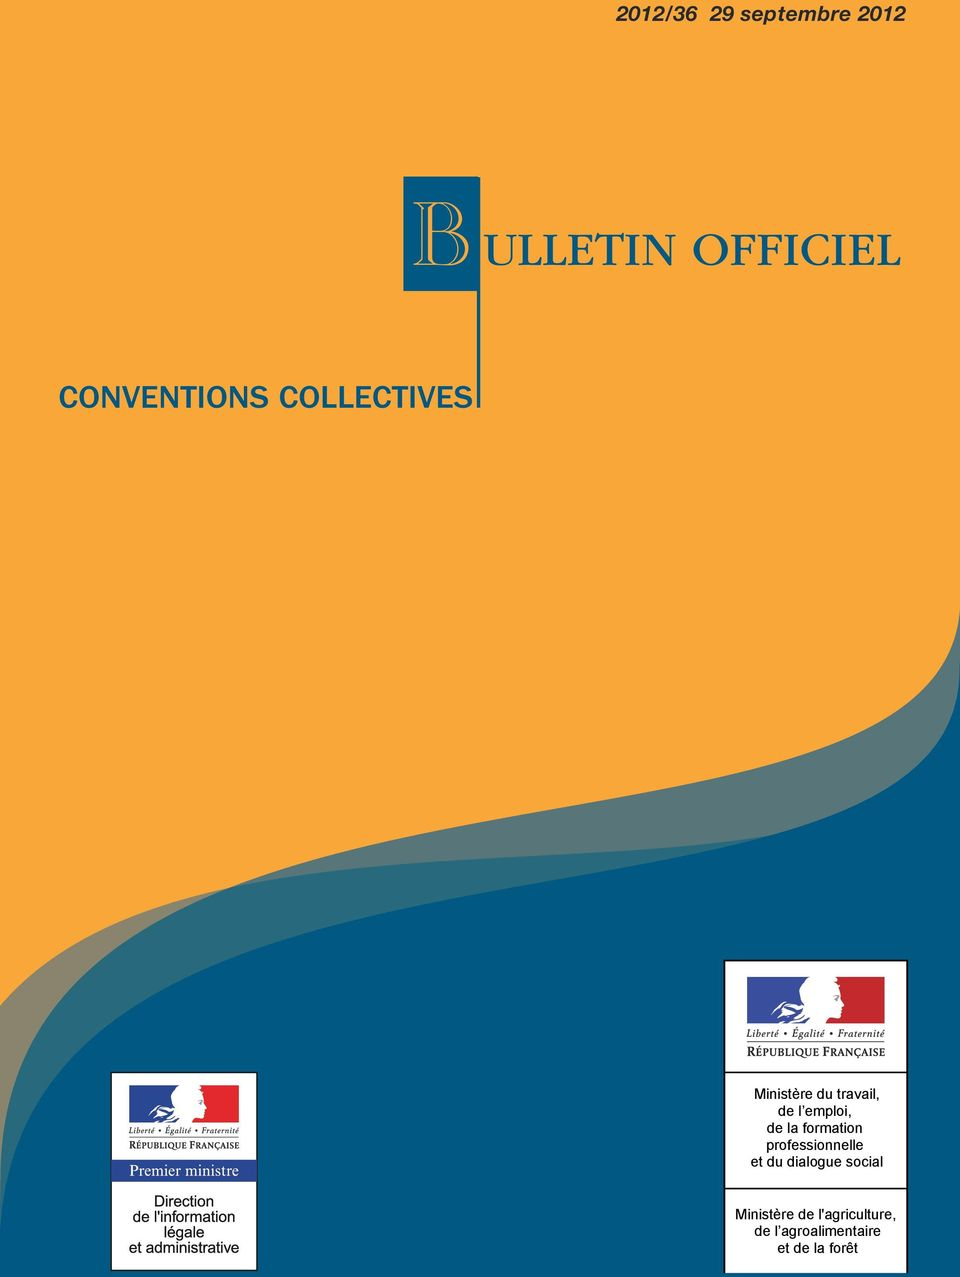 ULLETIN OFFICIEL